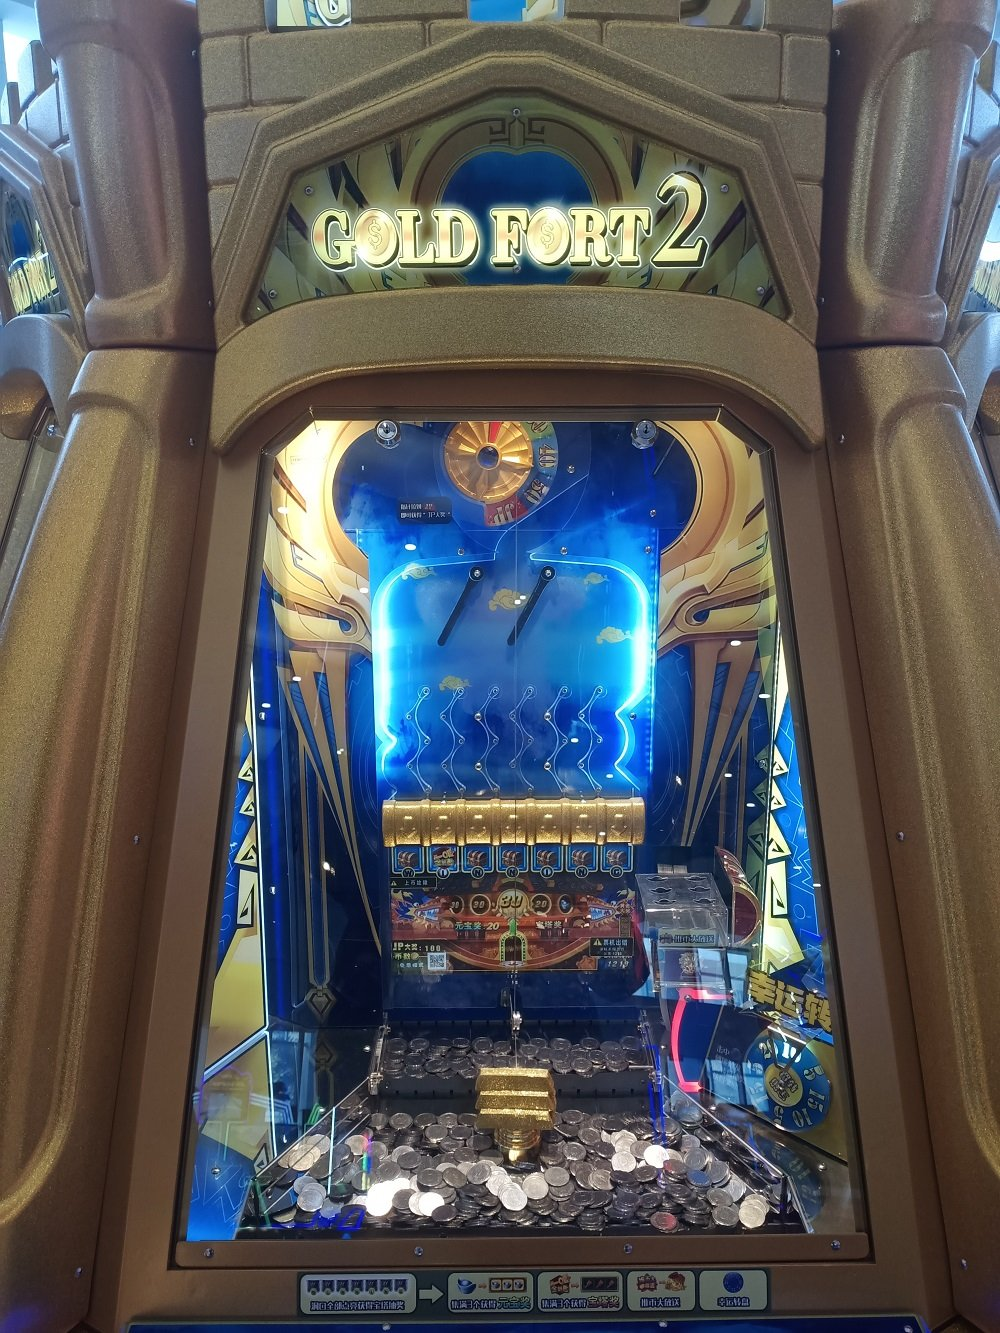 Gold Fort 2 Coin Pusher Redemption Game Machine